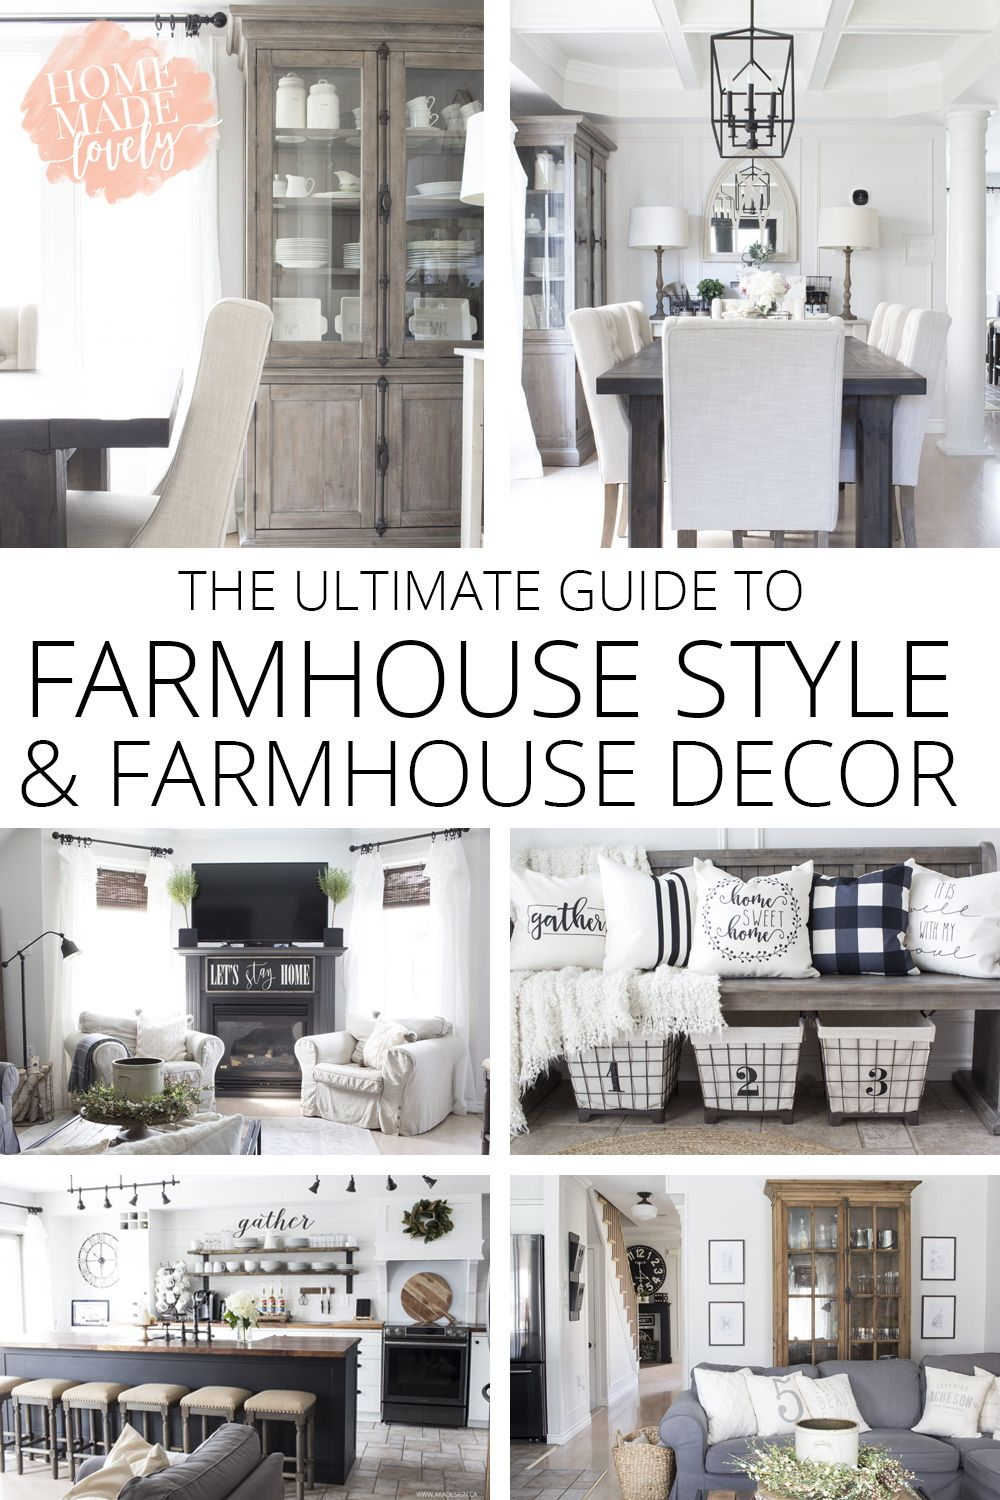 What Is Farmhouse Style The Ultimate Guide To Farmhouse Style Farmhouse Decor Home Decor Styles Farmhouse Style Decorating Country House Decor